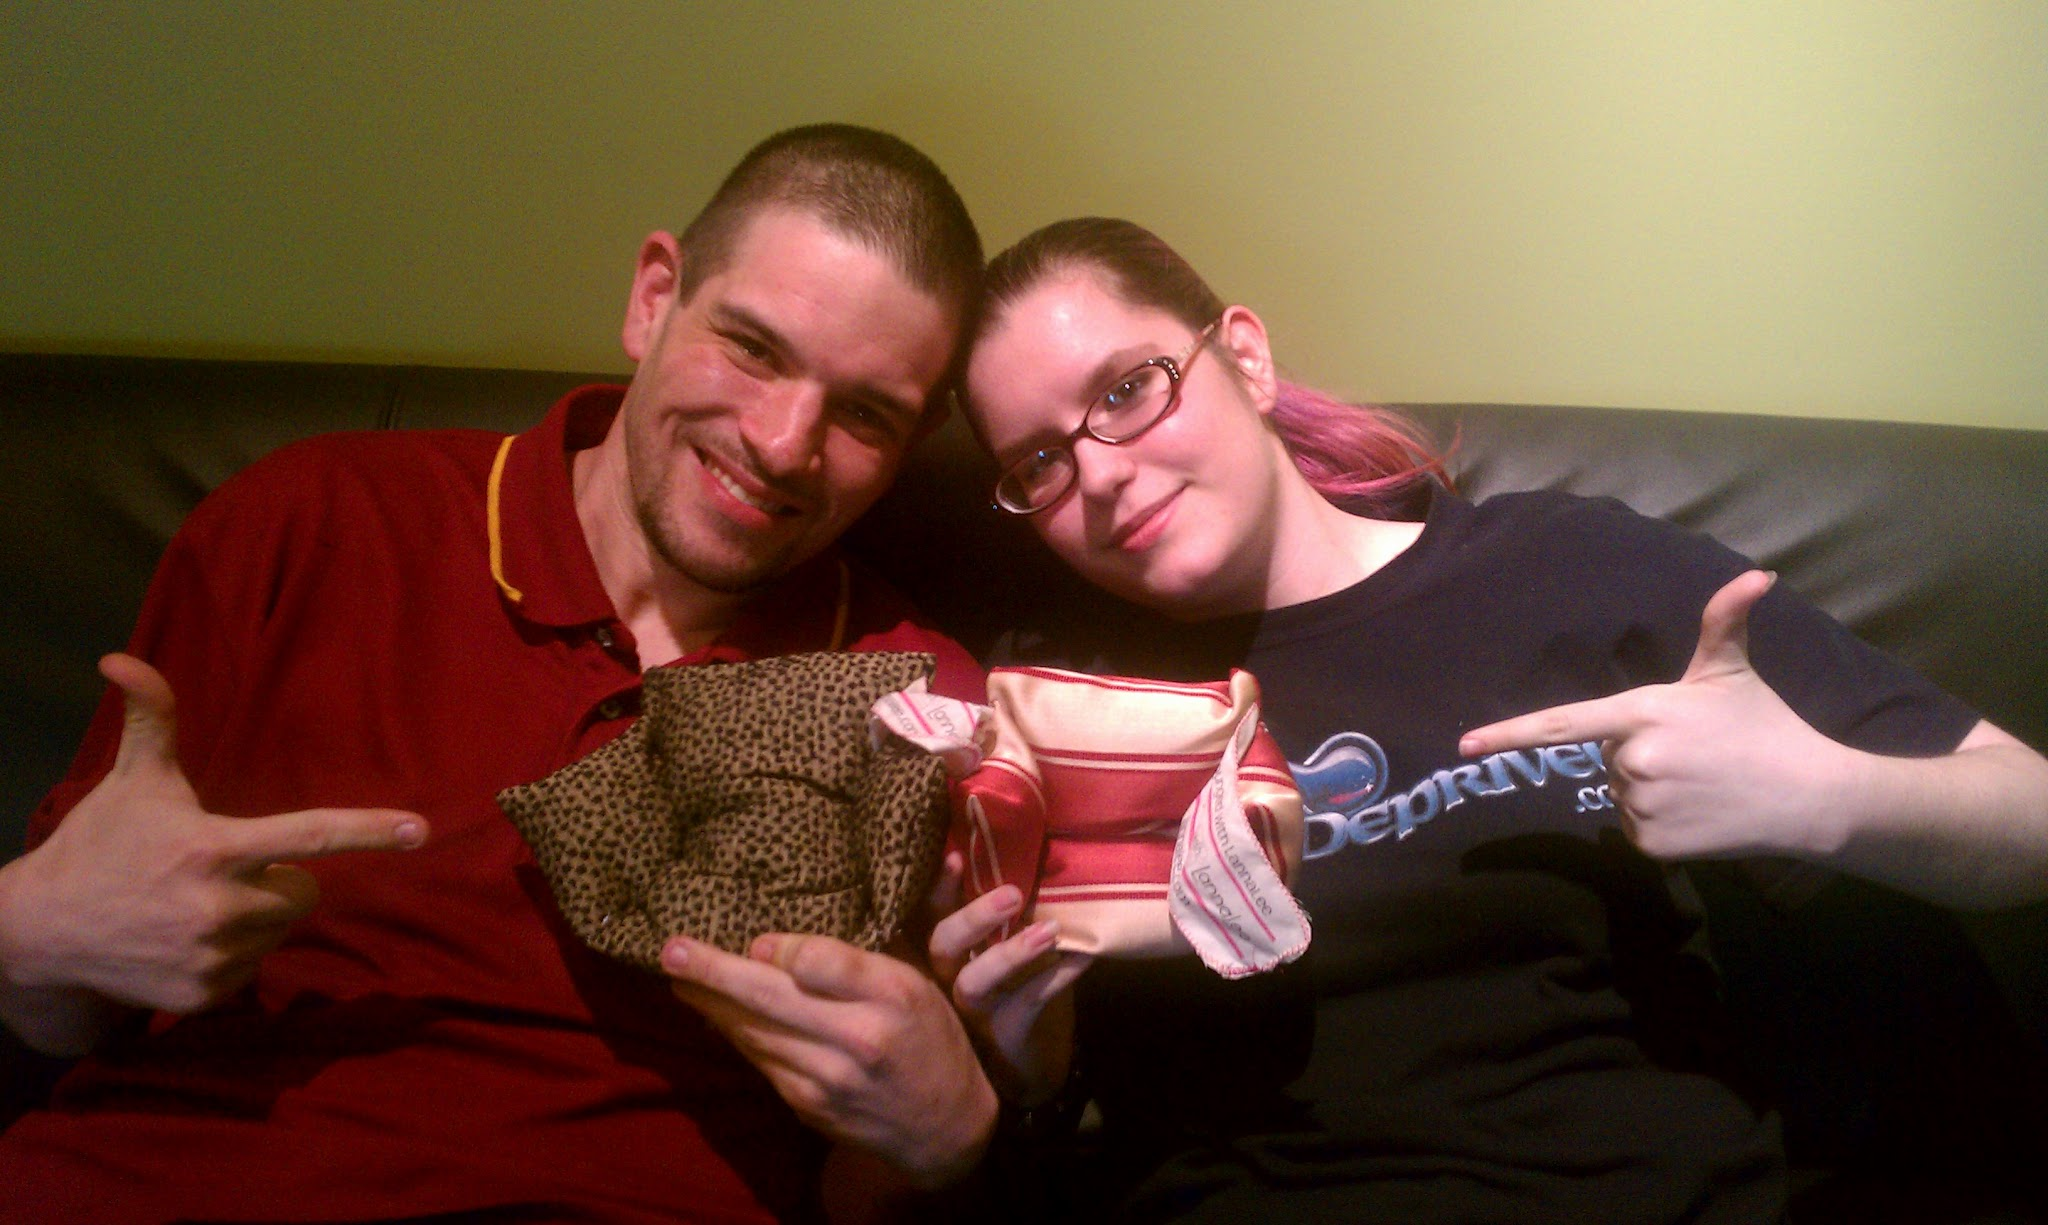 Tony and Mariah lounged with LannaLee and got couches!